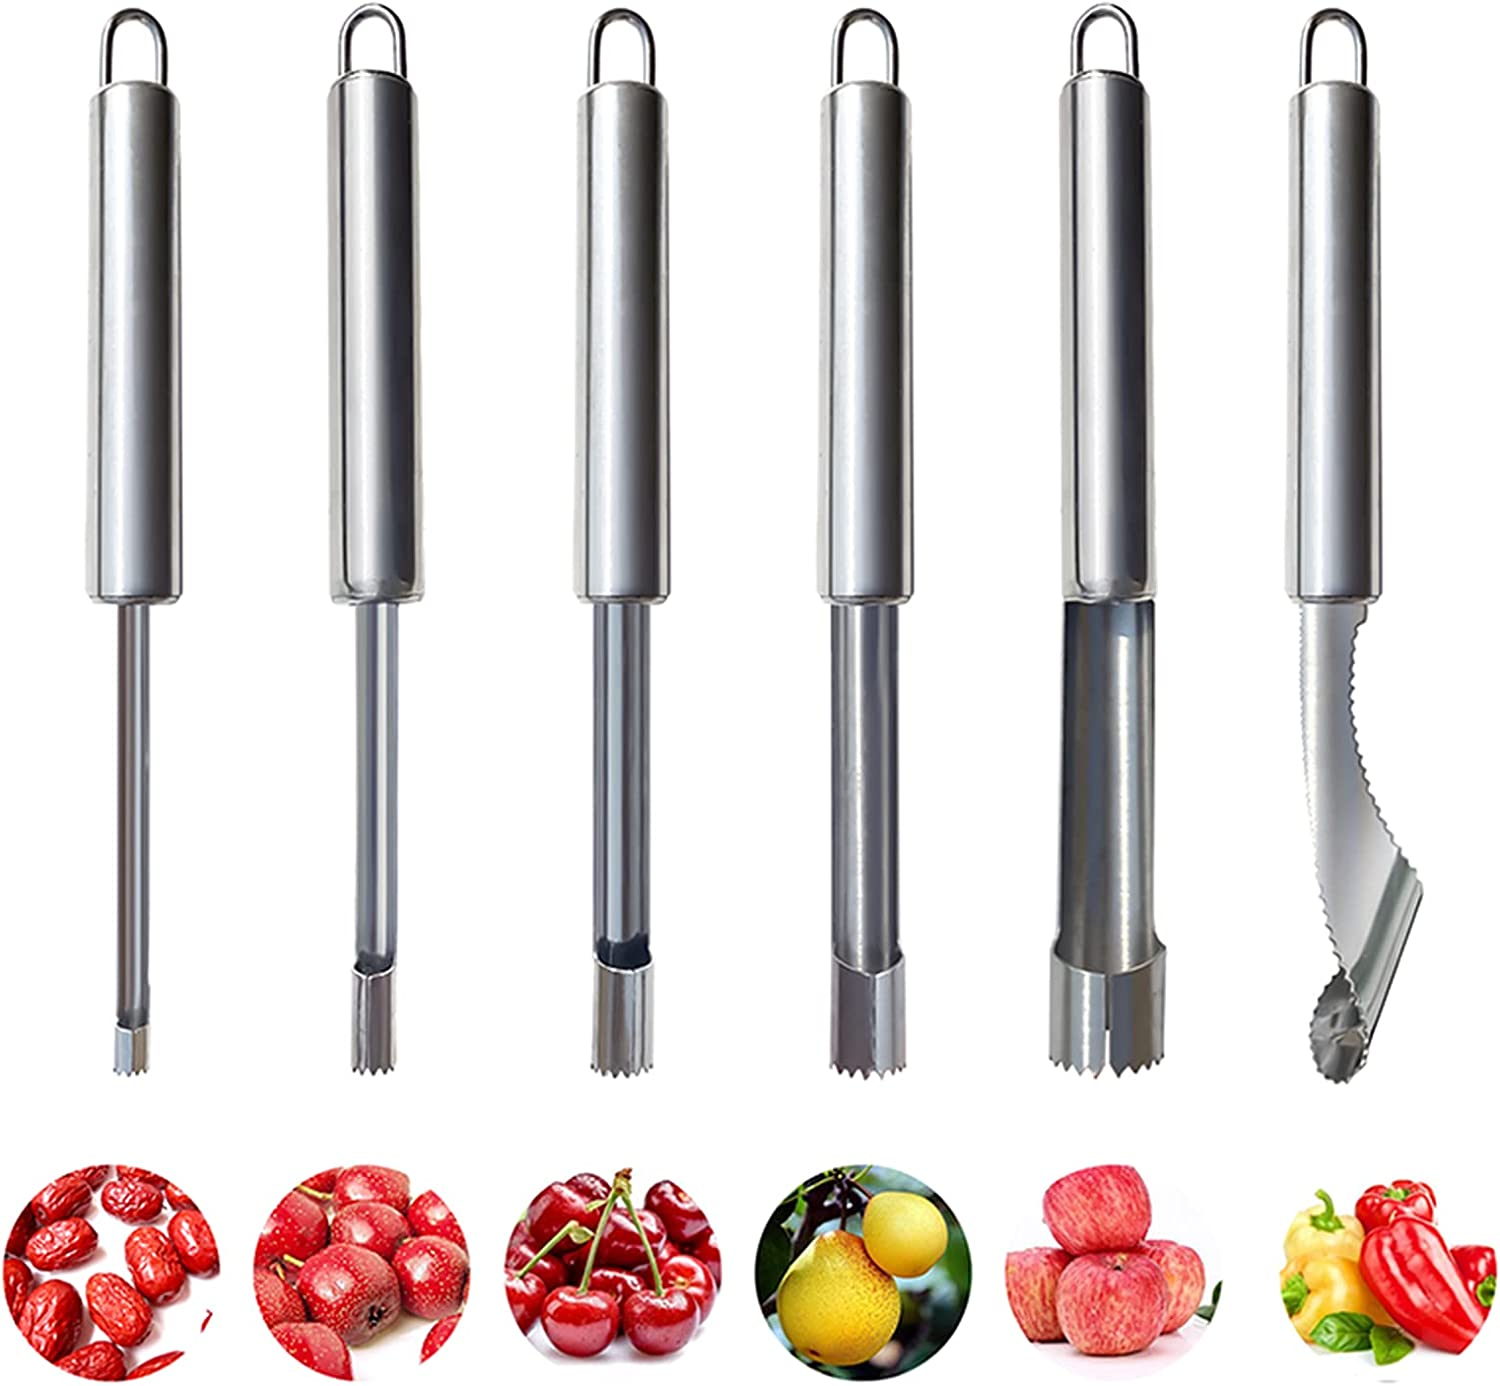 6 Pieces Corer and Pitter Fruit & Vegetable Multi-Function Stainless Corer and Pitter Remover Set for Apple, Pear, Cherry, Jujube, Red Dates, Berry, Chili